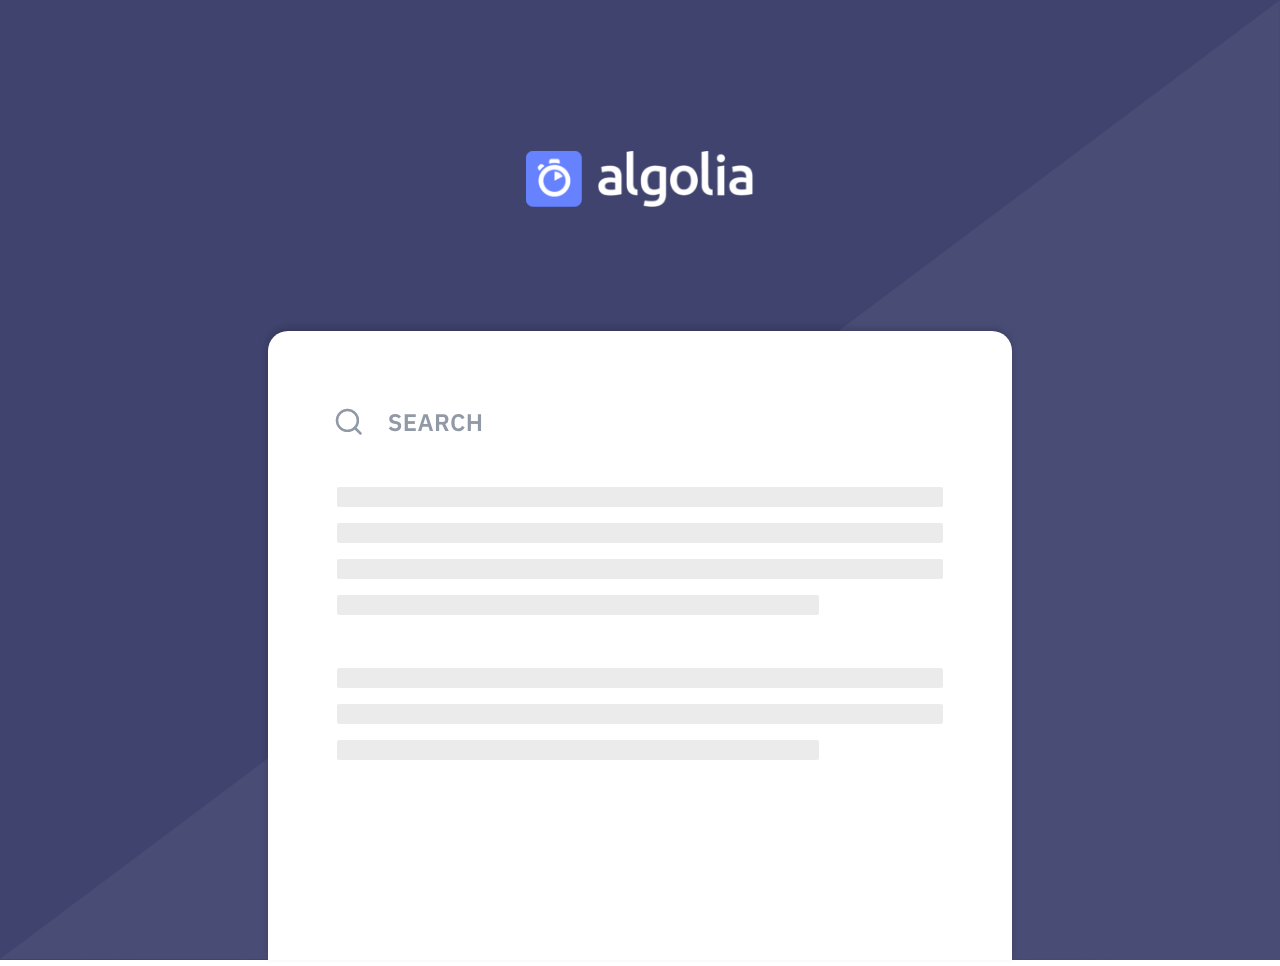 Build a Smart Search Form with Algolia thumbnail